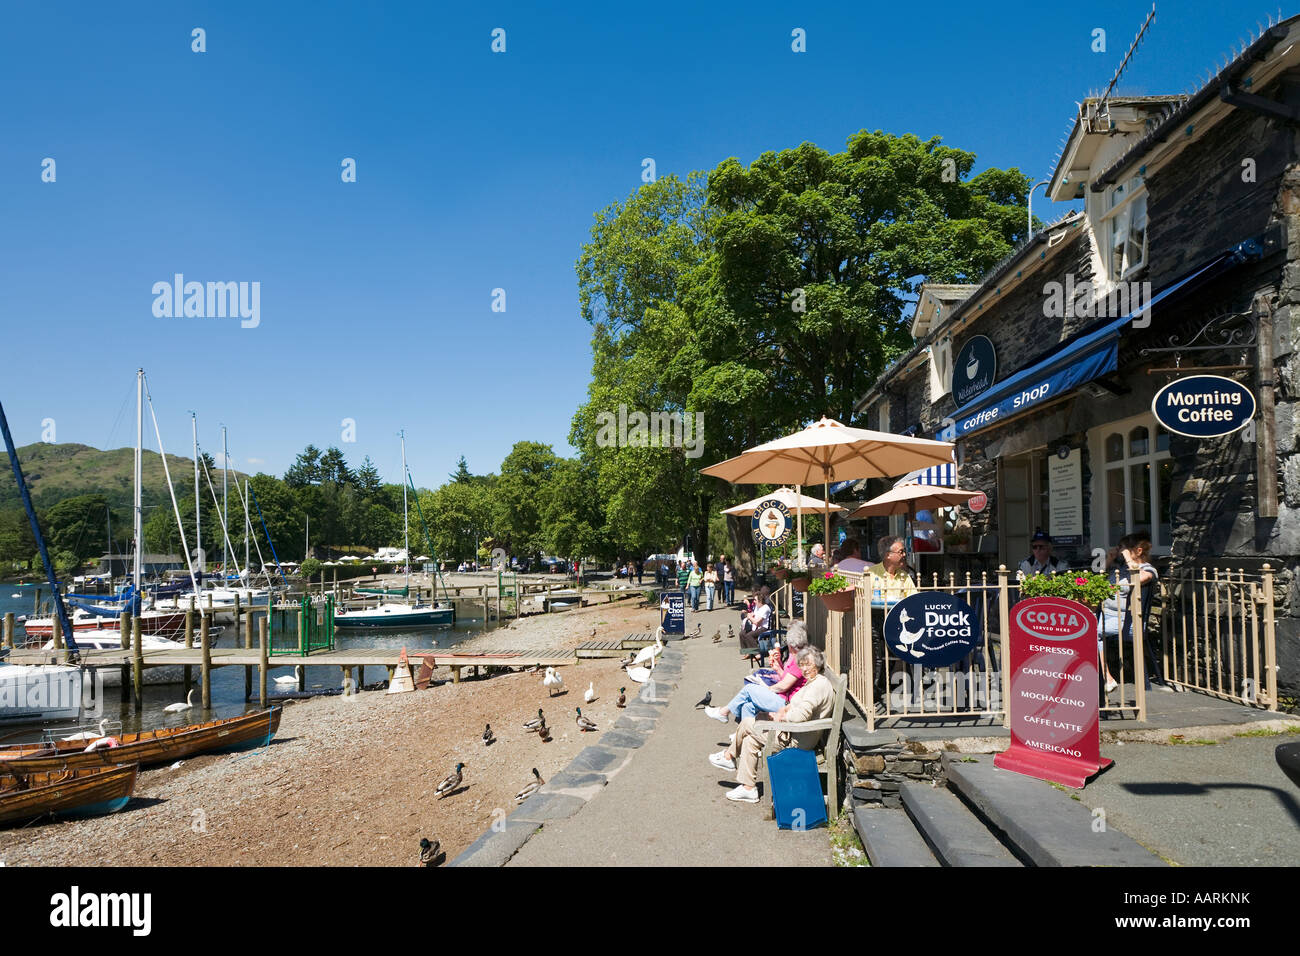 Coffee Shop, Waterhead Bay, Ambleside, Lake Windermere, Lake District, Cumbria, England, UK - Stock Image